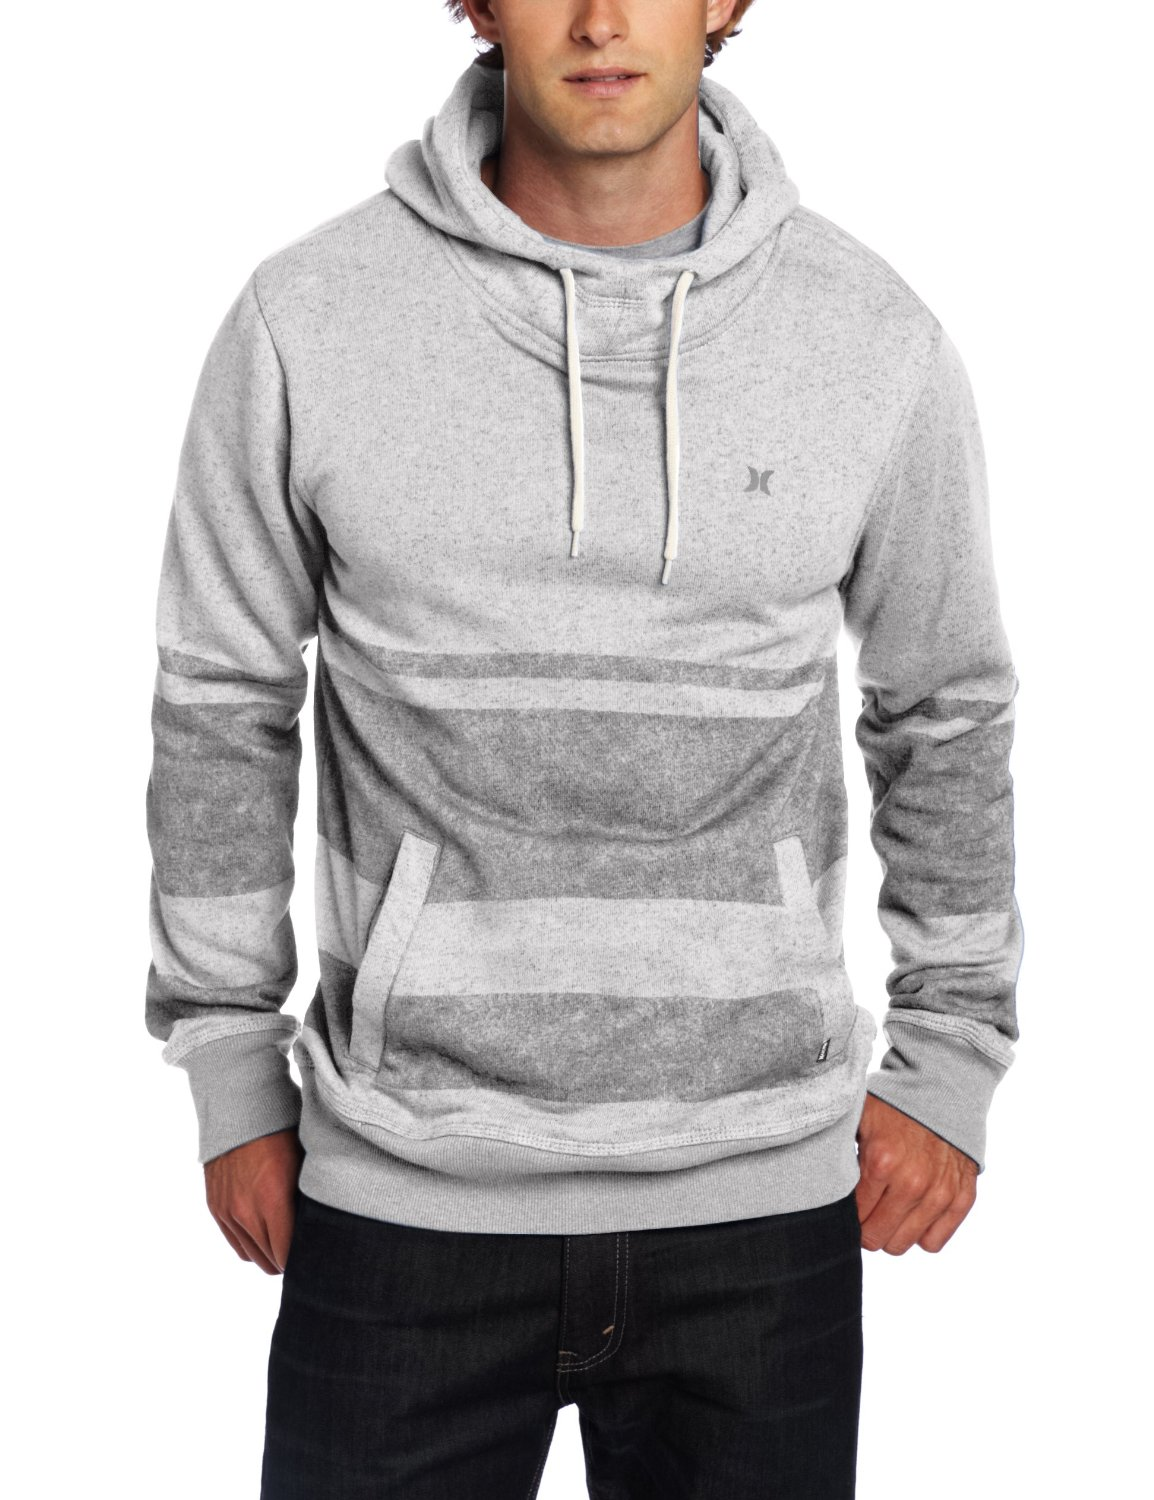 Find great deals on eBay for mens sweatshirts. Shop with confidence.